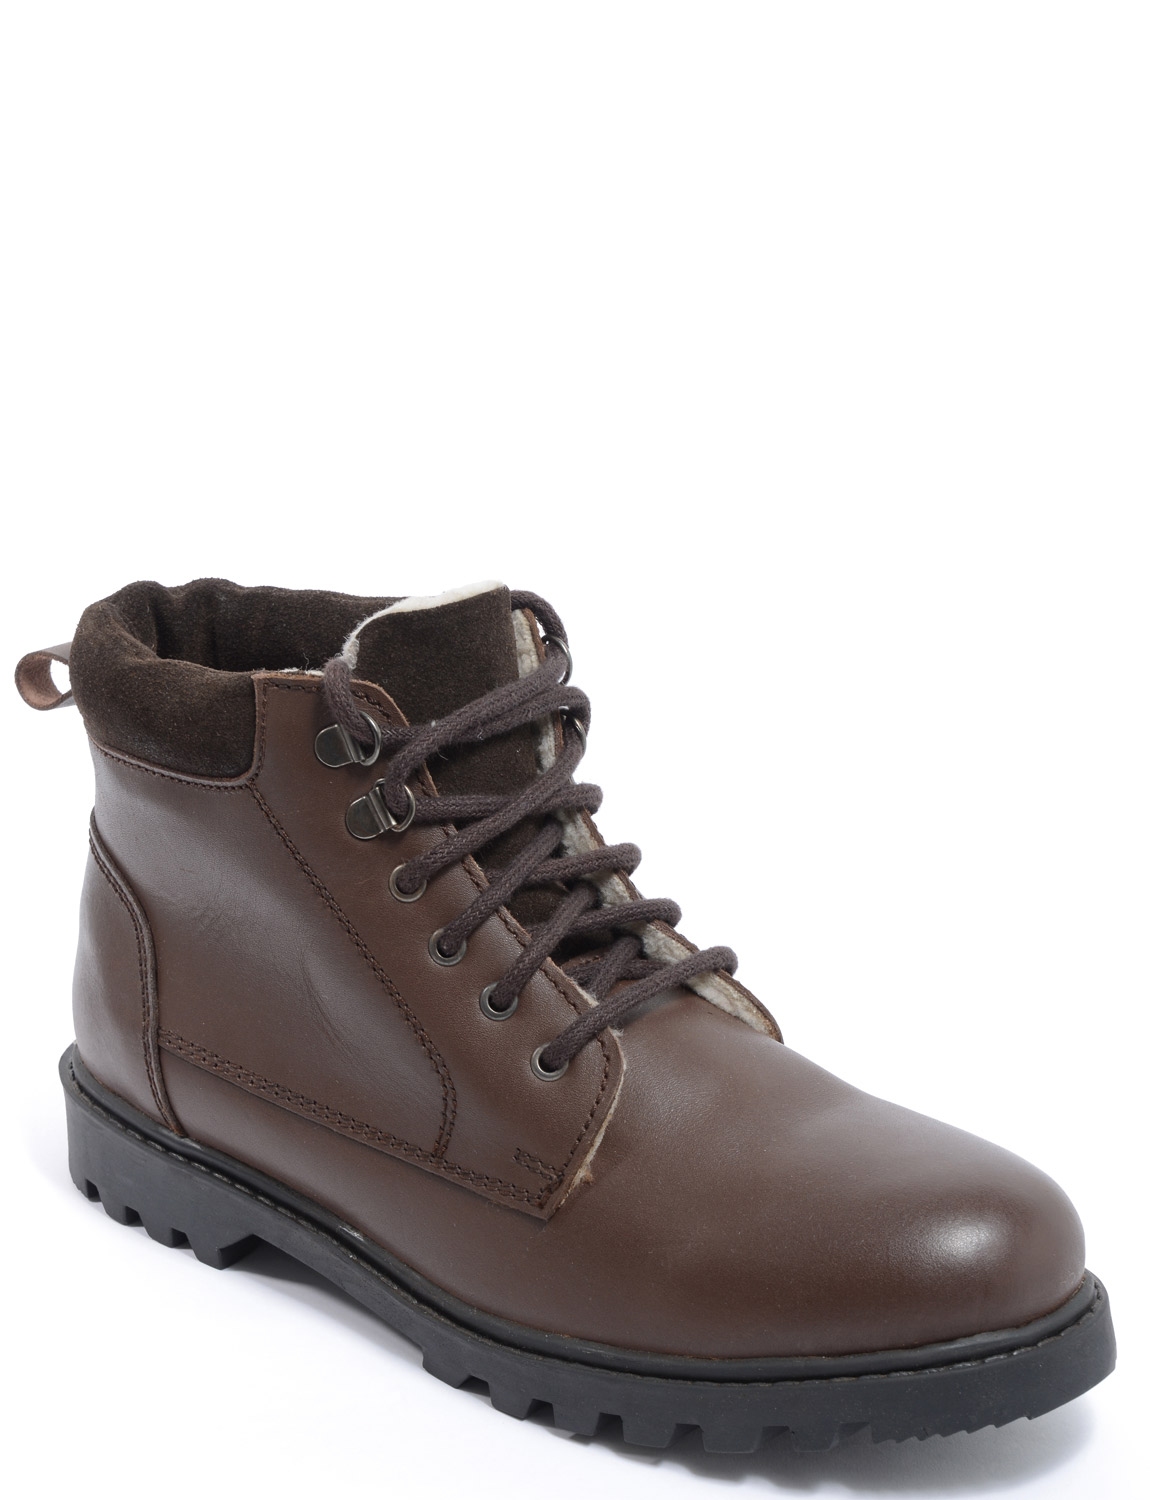 mens fleece lined leather boots ebay